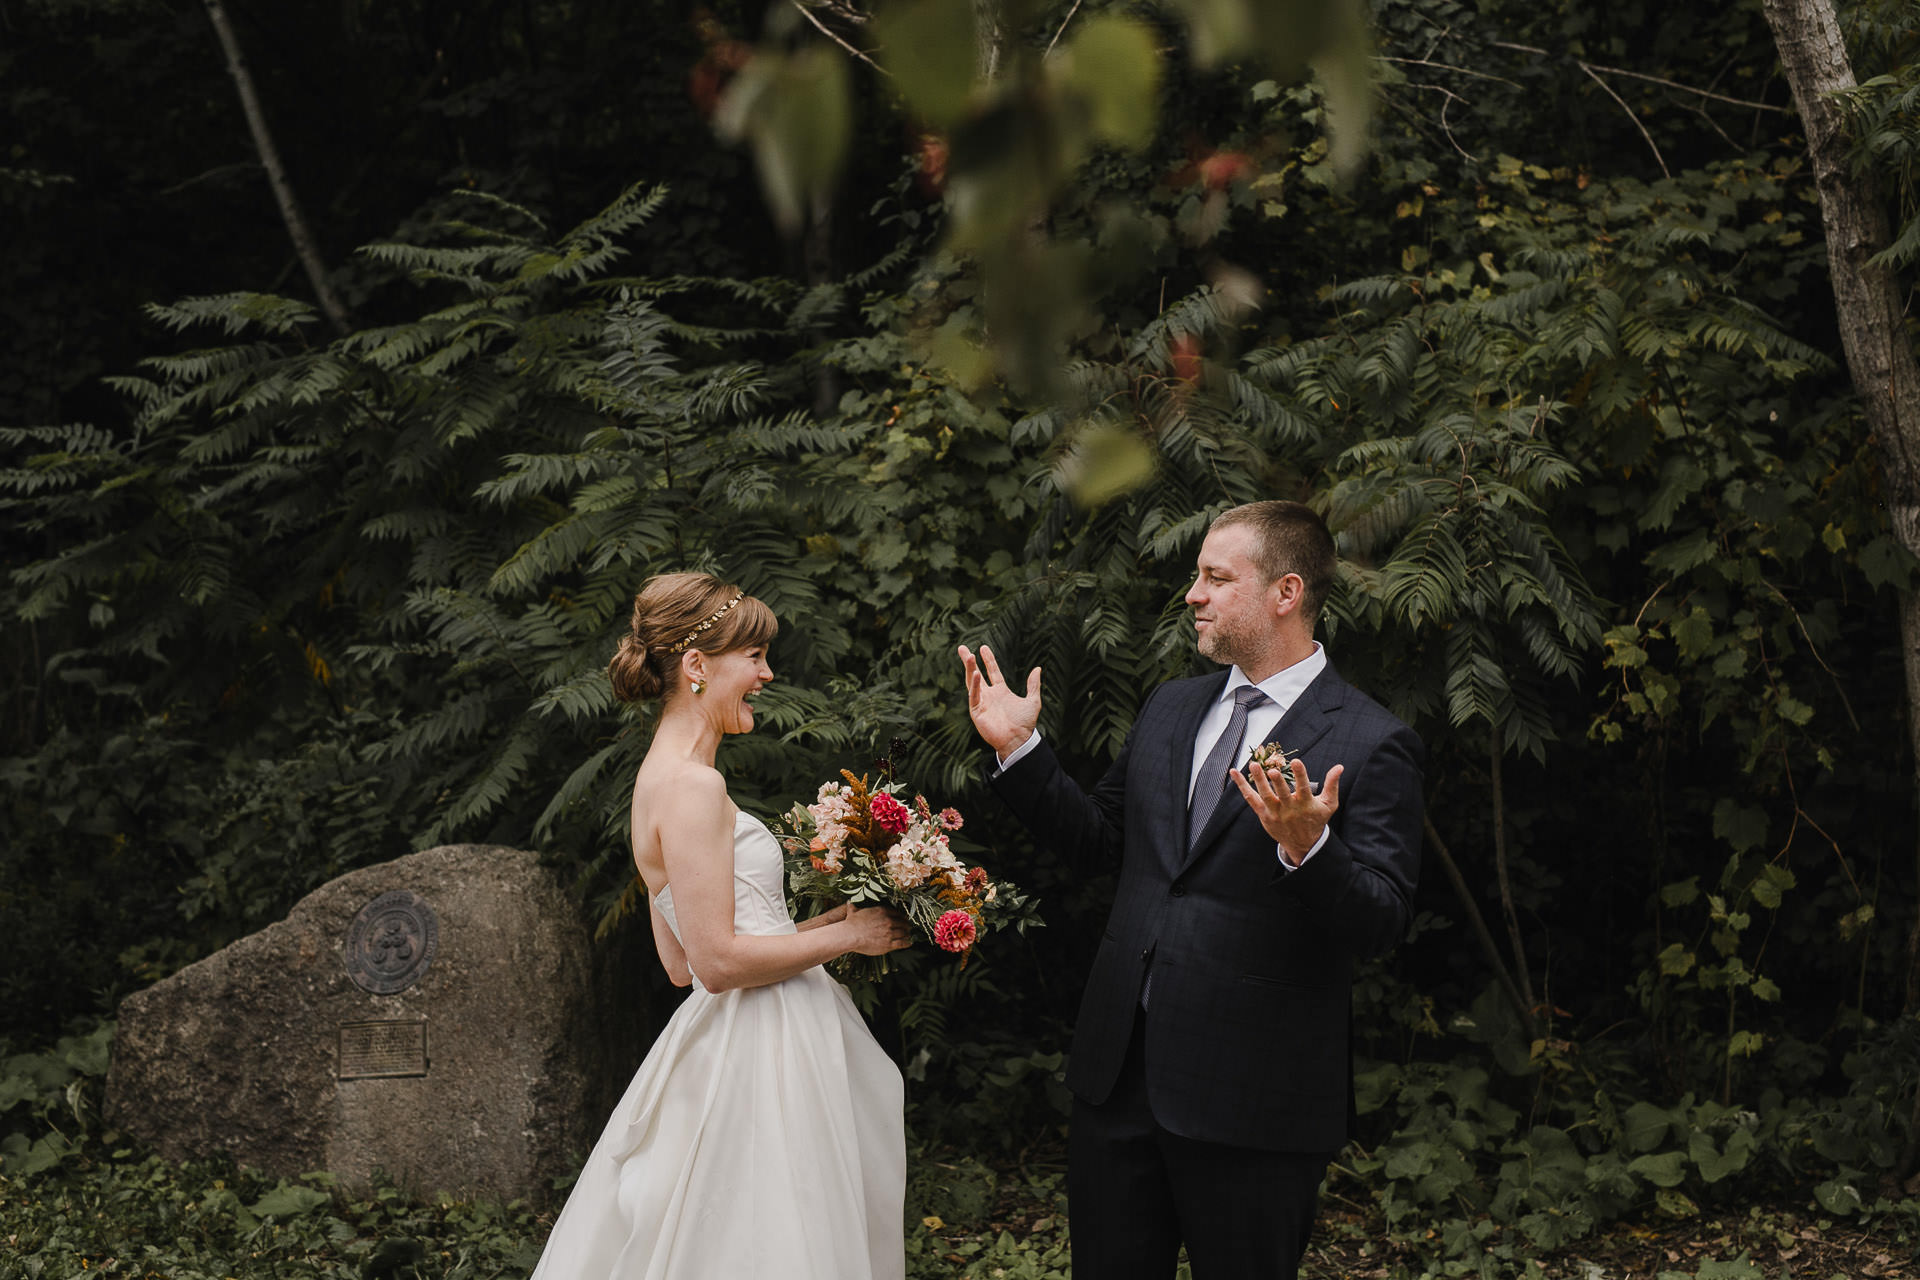 Evergreen Brickworks wedding photographer - first look reaction